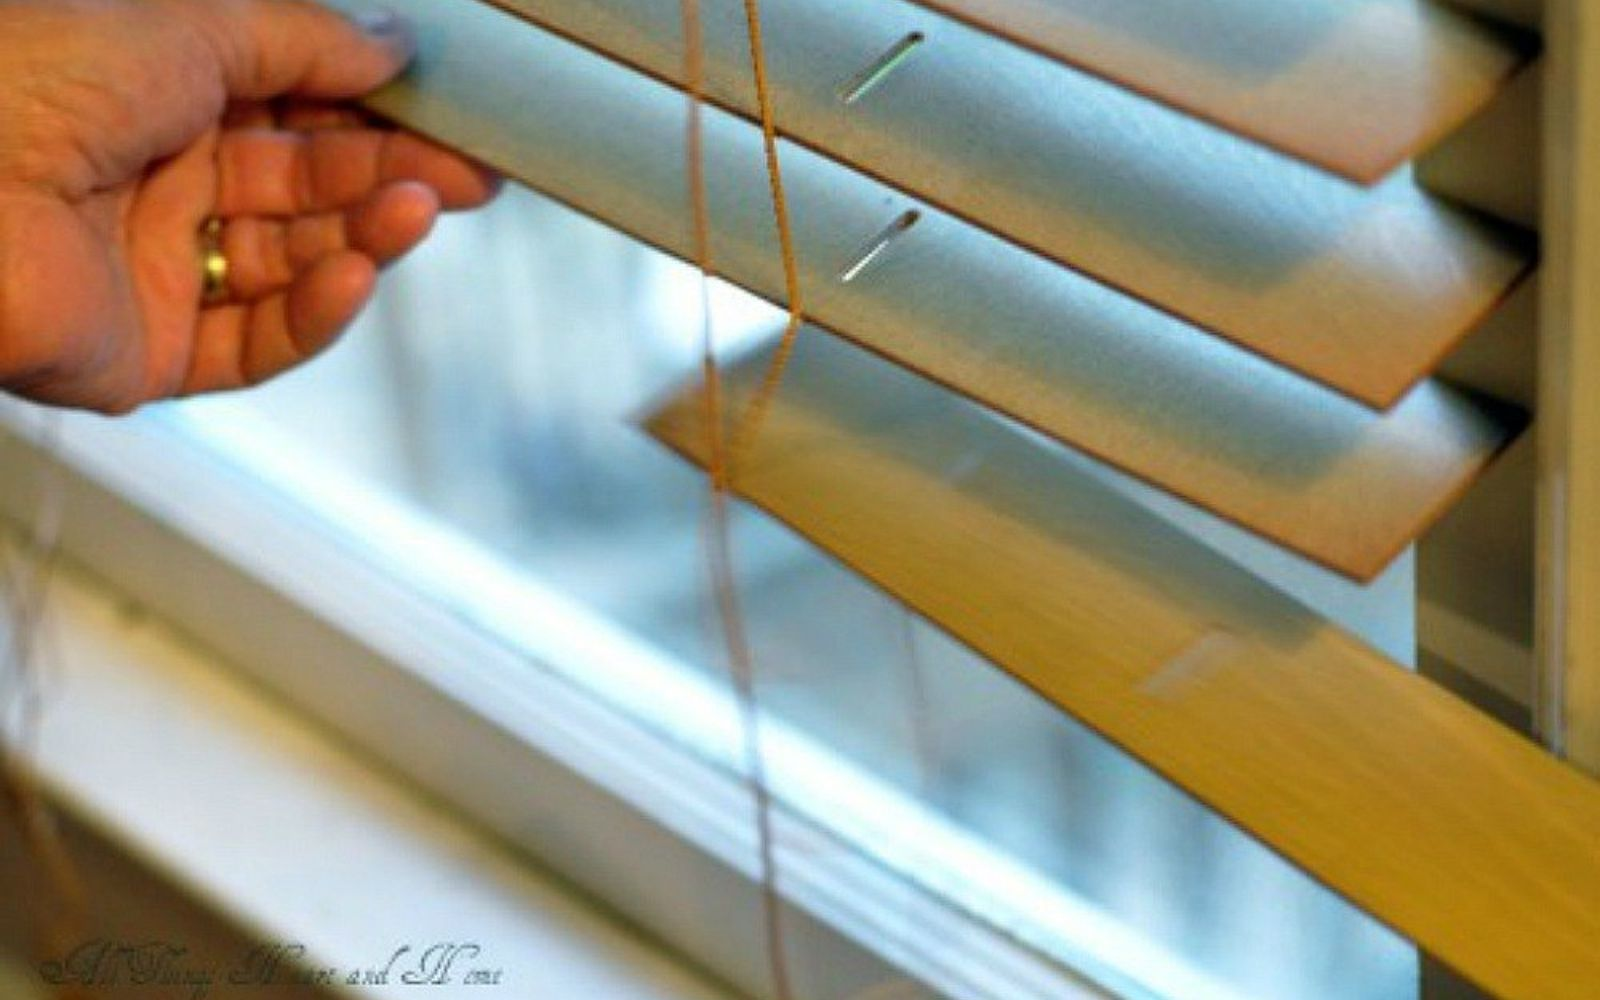 s 11genius ways to transform your ugly blinds, home decor, Repaint them for a fresh feel